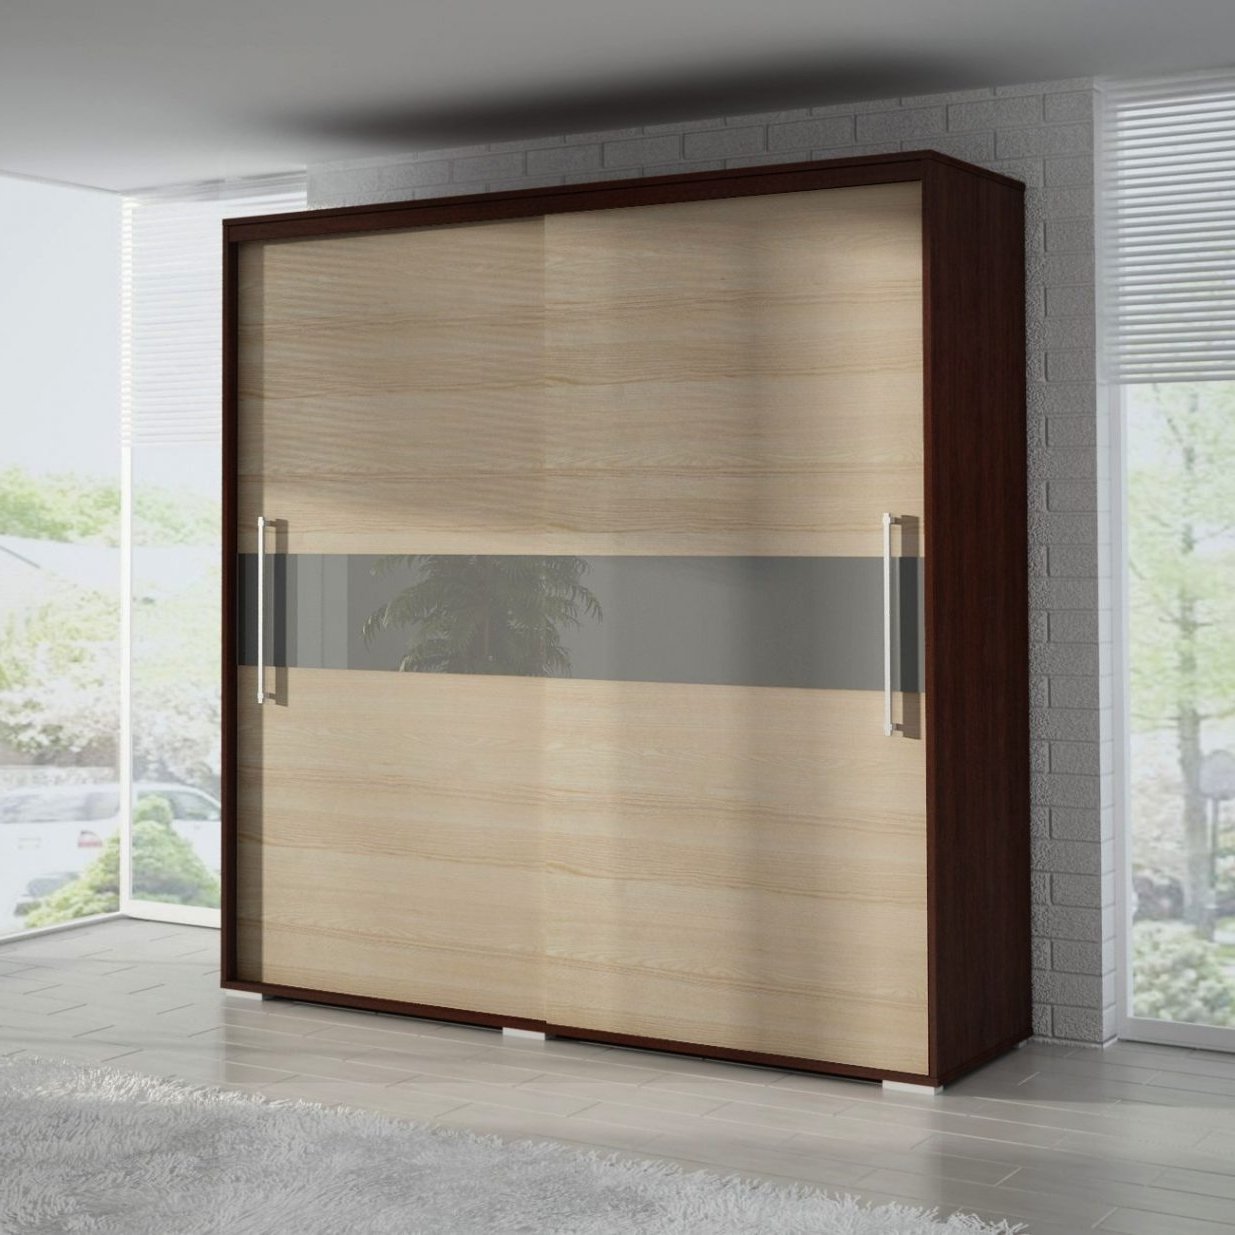 2 Sliding Door Wardrobes For Current 2 Door Sliding Wardrobe (View 1 of 15)